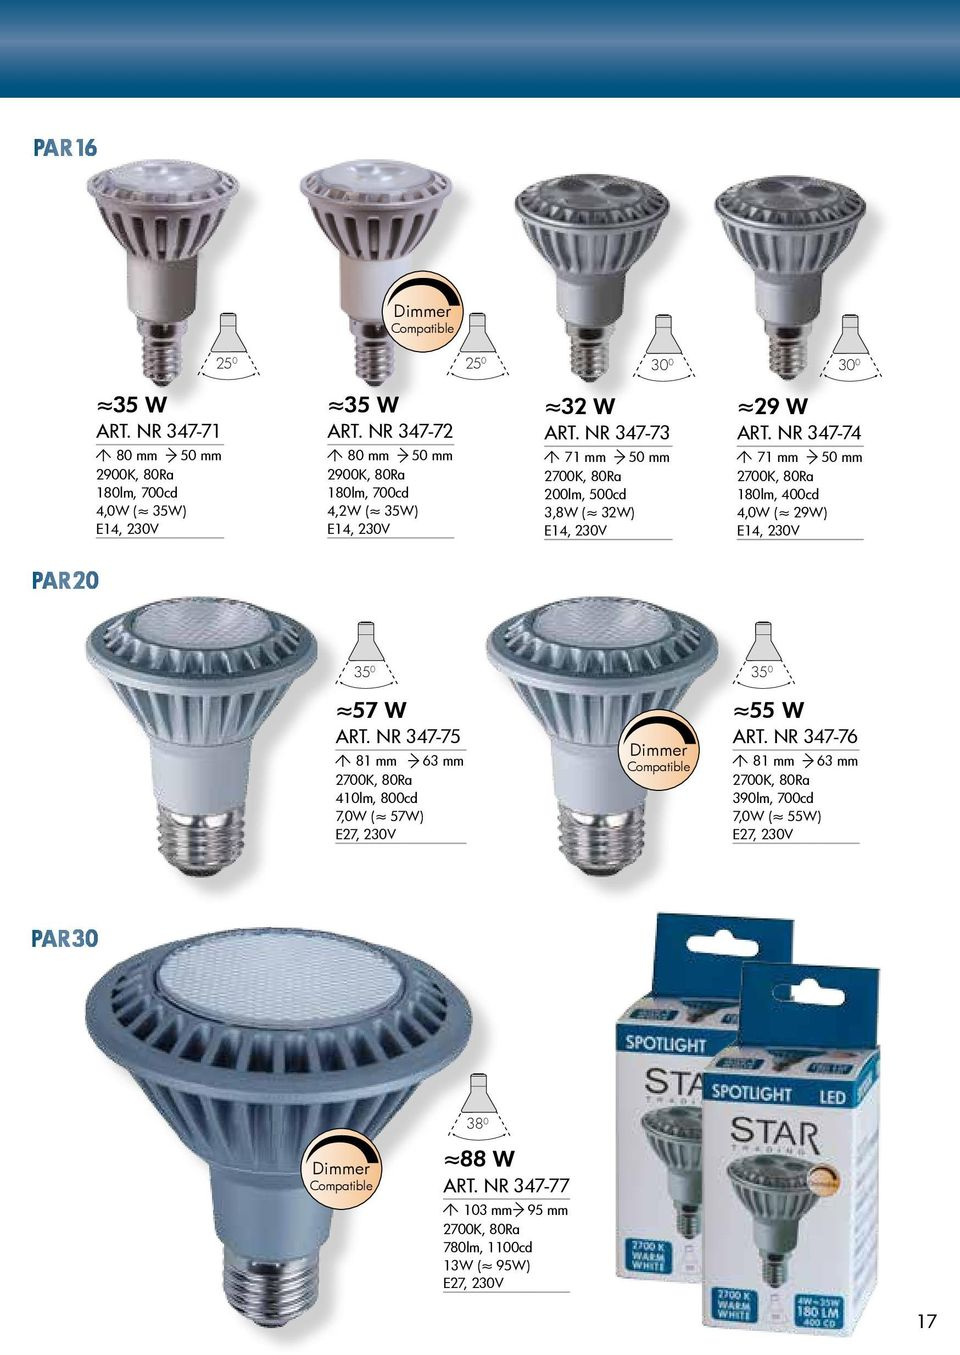 NR 347-74 71 mm 50 mm 180lm, 400cd 4,0W ( 29W) PAR 20 35 0 35 0 57 W ART.